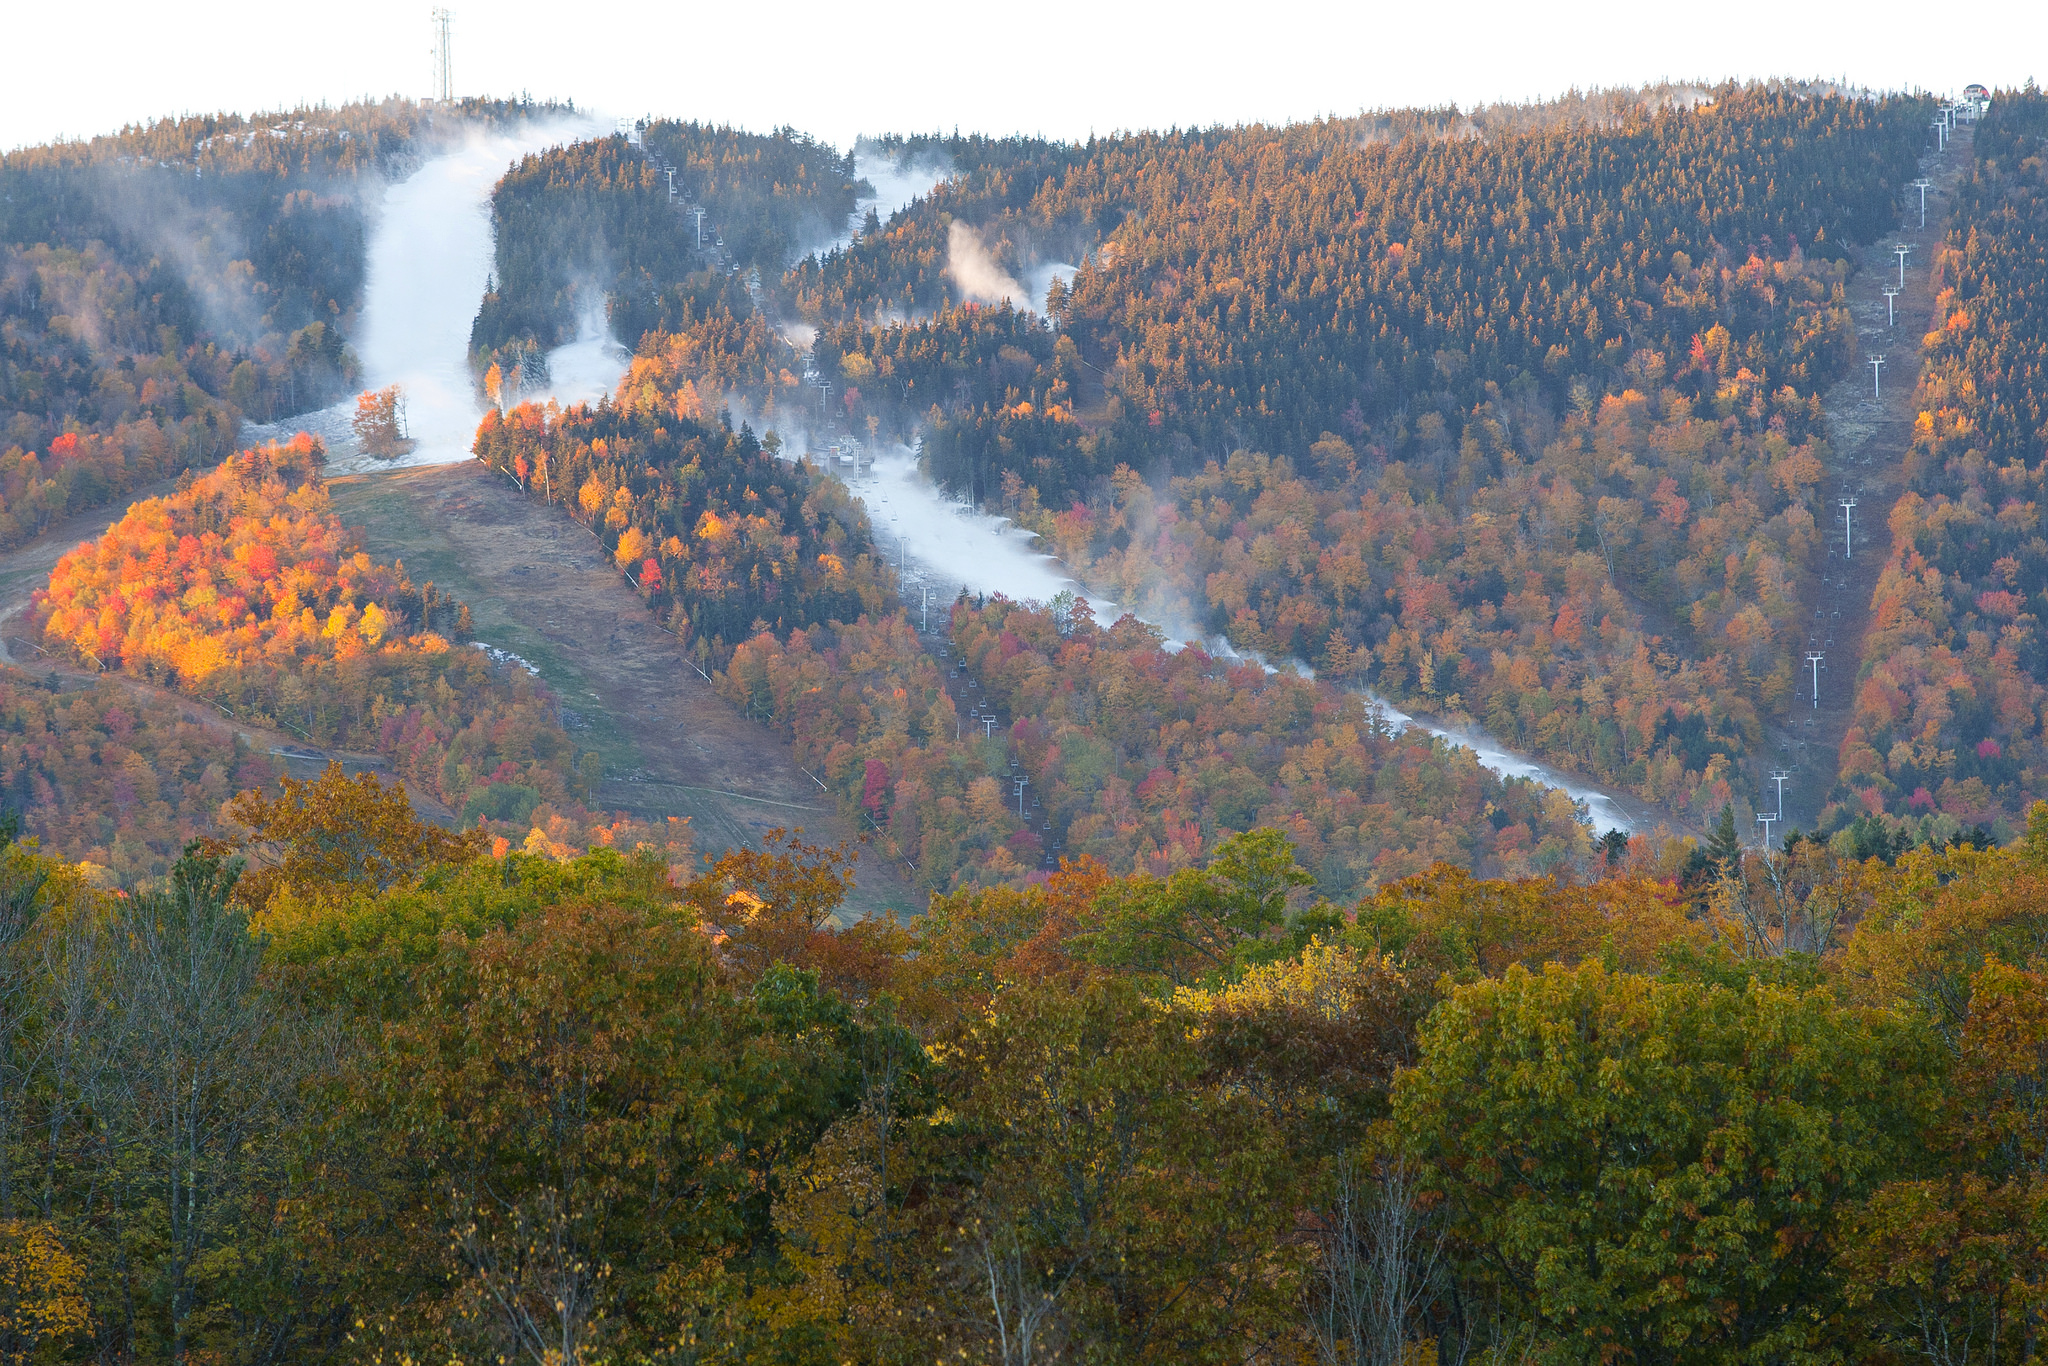 St George Auto >> Sunday River, Sugarloaf sold as part of ski resort